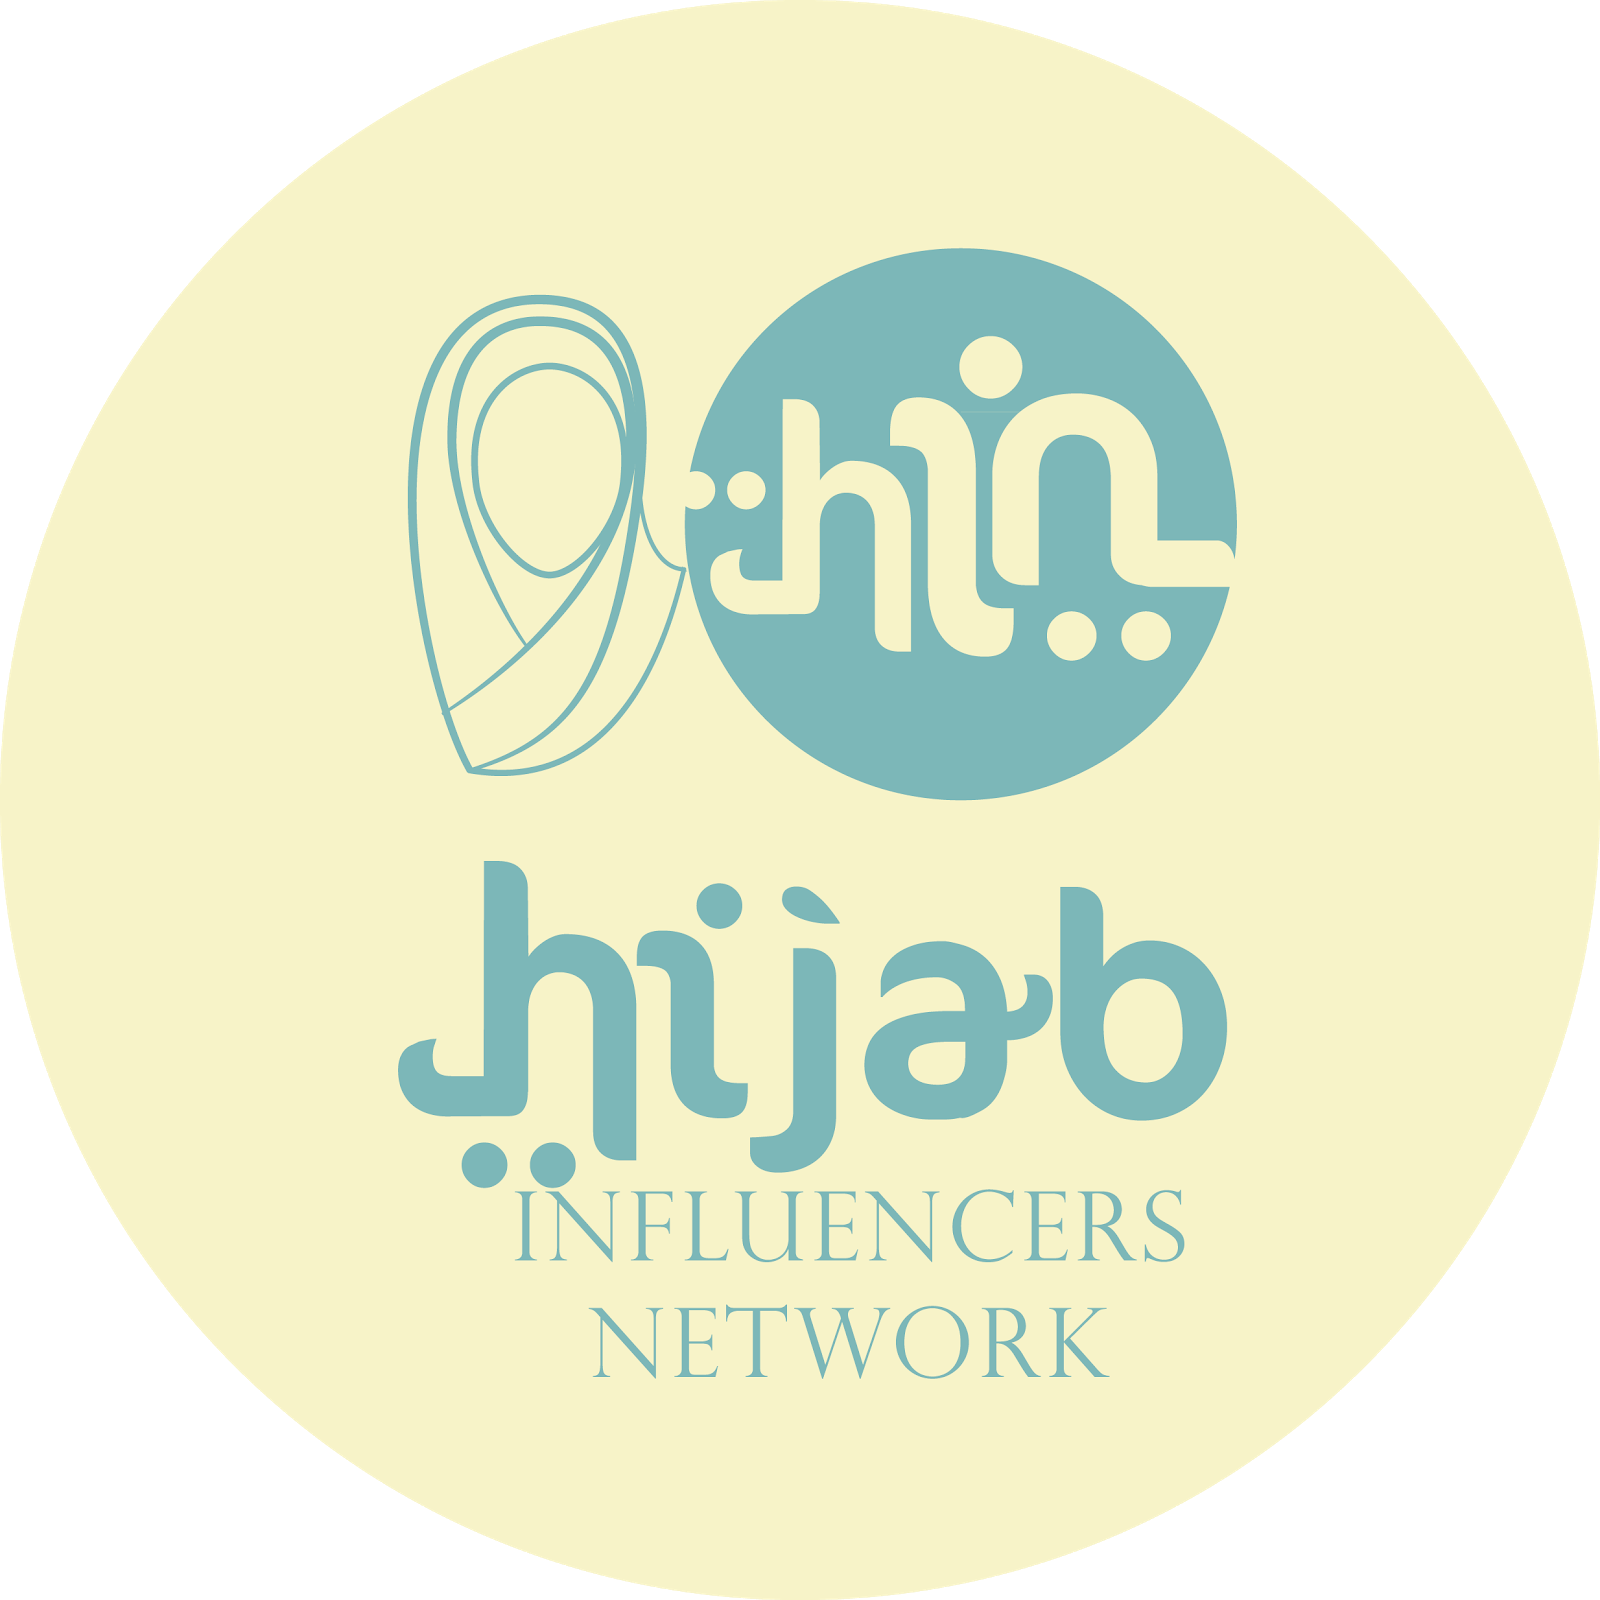 Founder Hijab Influencers Network